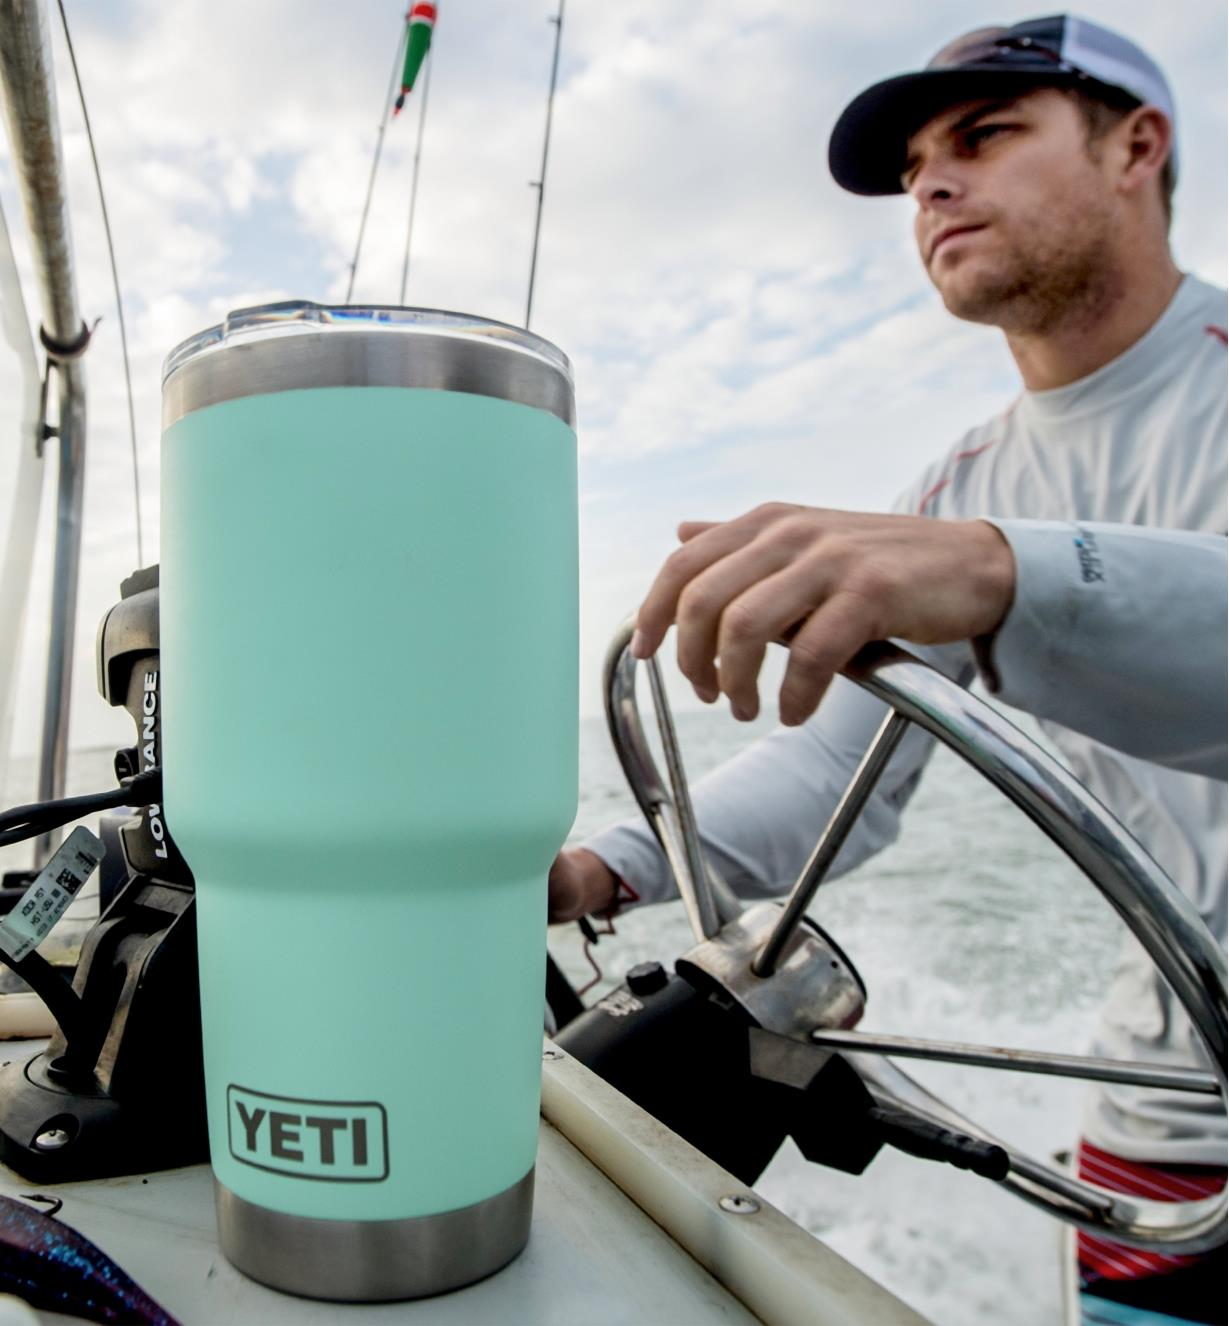 30 oz seafoam Yeti Tumbler on a boat with a man at the wheel in the background